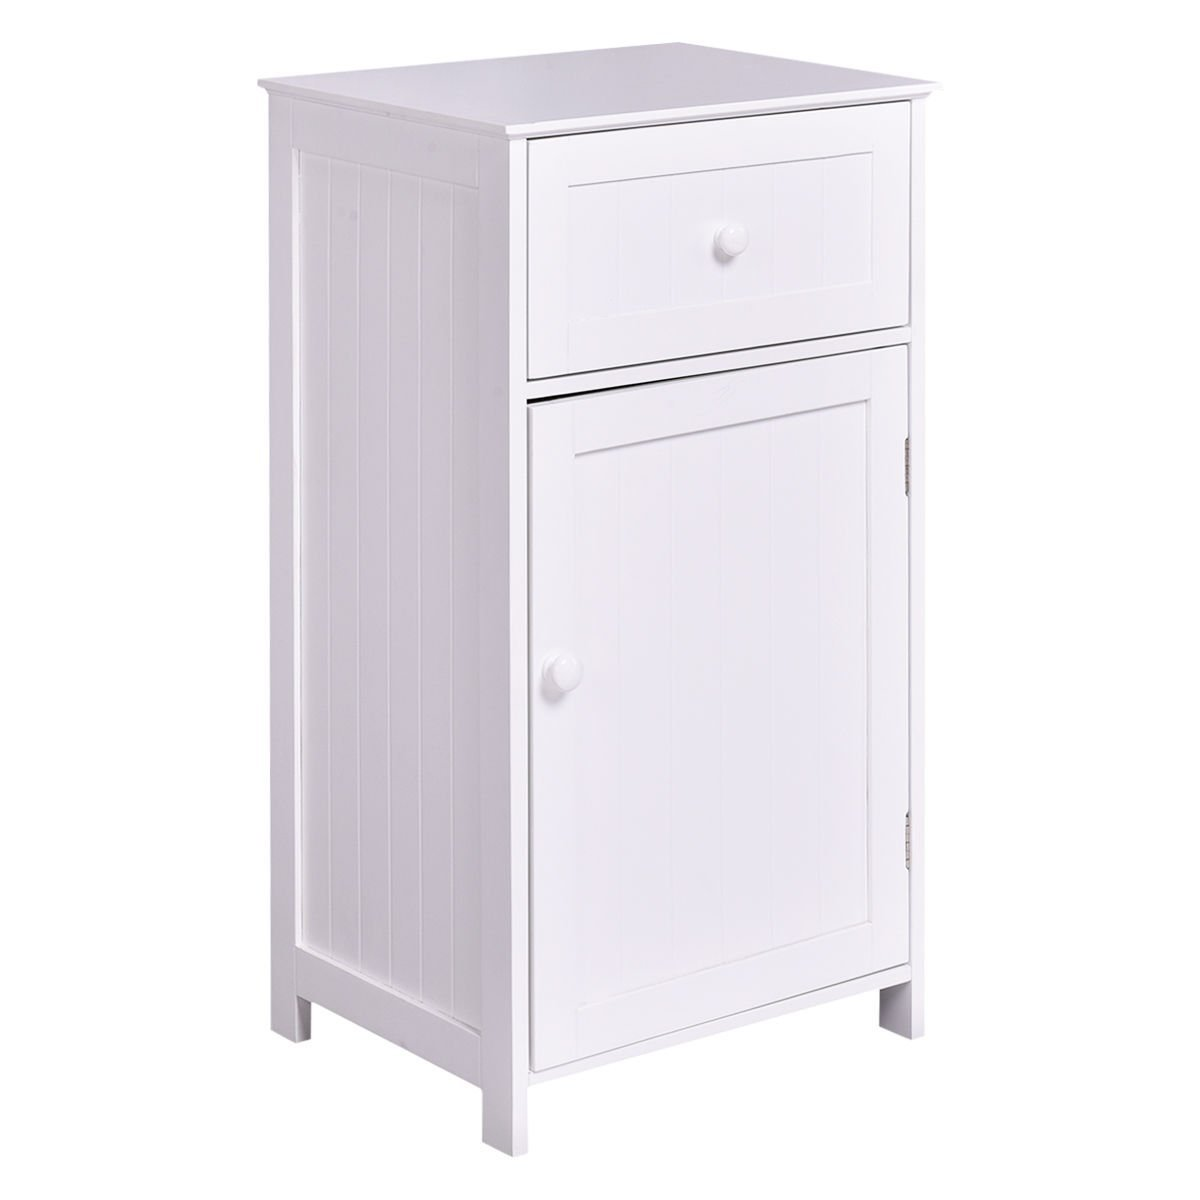 Tangkula Floor Storage Cabinet Bathroom